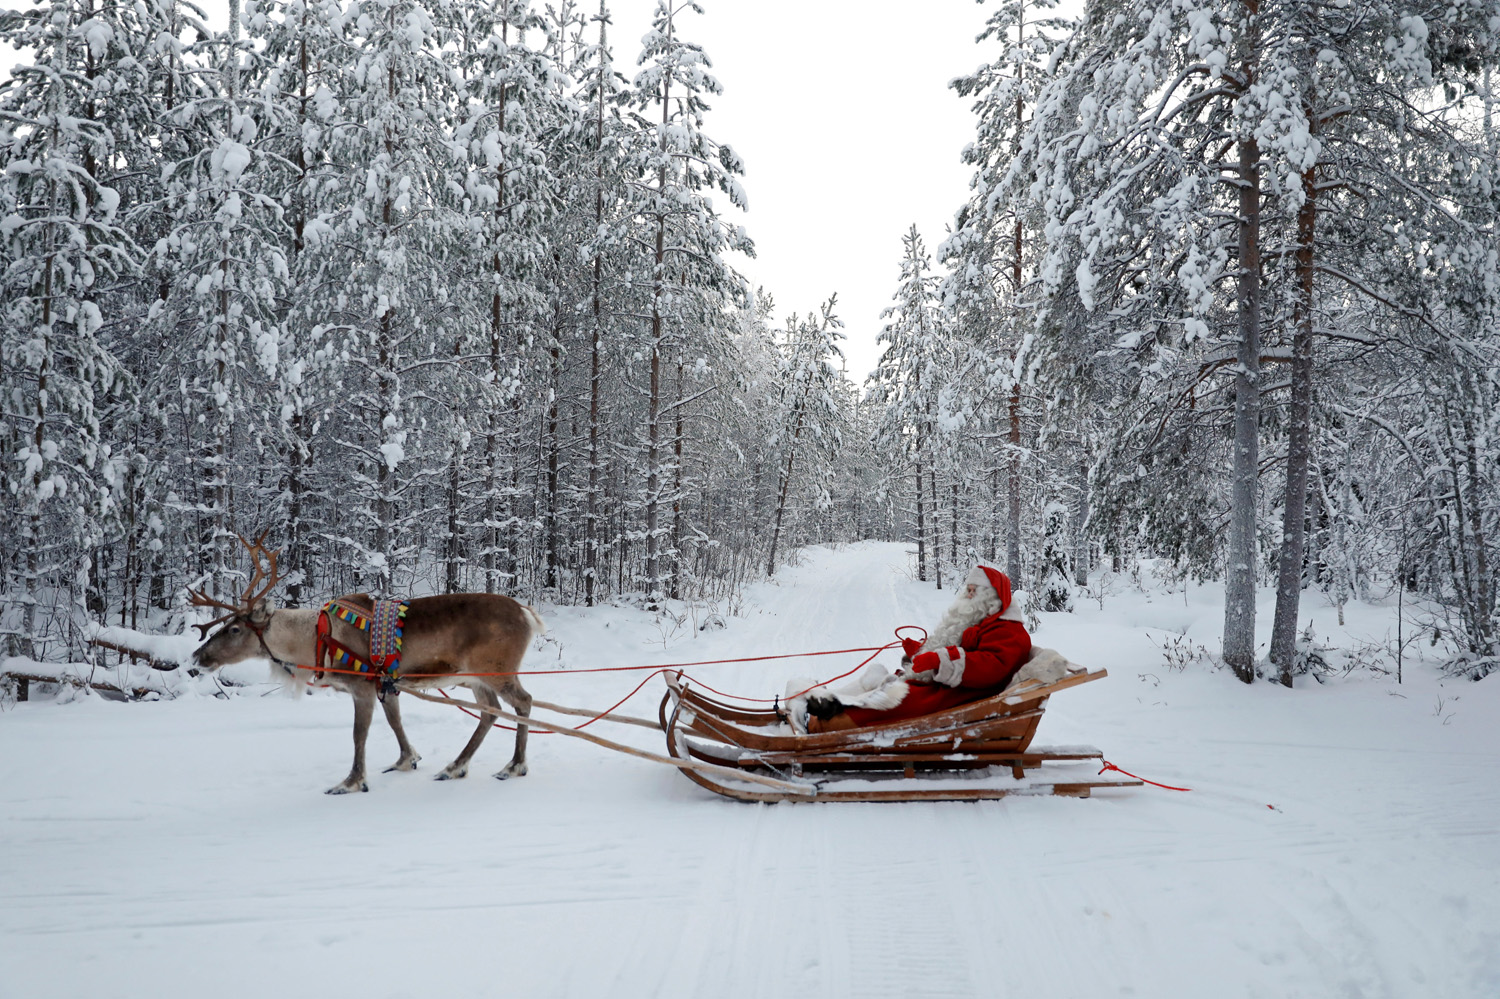 "Santa Claus rides in his sleigh as he prepares for Christmas in the Arctic Circle near Rovaniemi, Finland December 15, 2016. REUTERS/Pawel Kopczynski SEARCH ""KOPCZYNSKI SANTA"" FOR THIS STORY. SEARCH ""THE WIDER IMAGE"" FOR ALL STORIES"